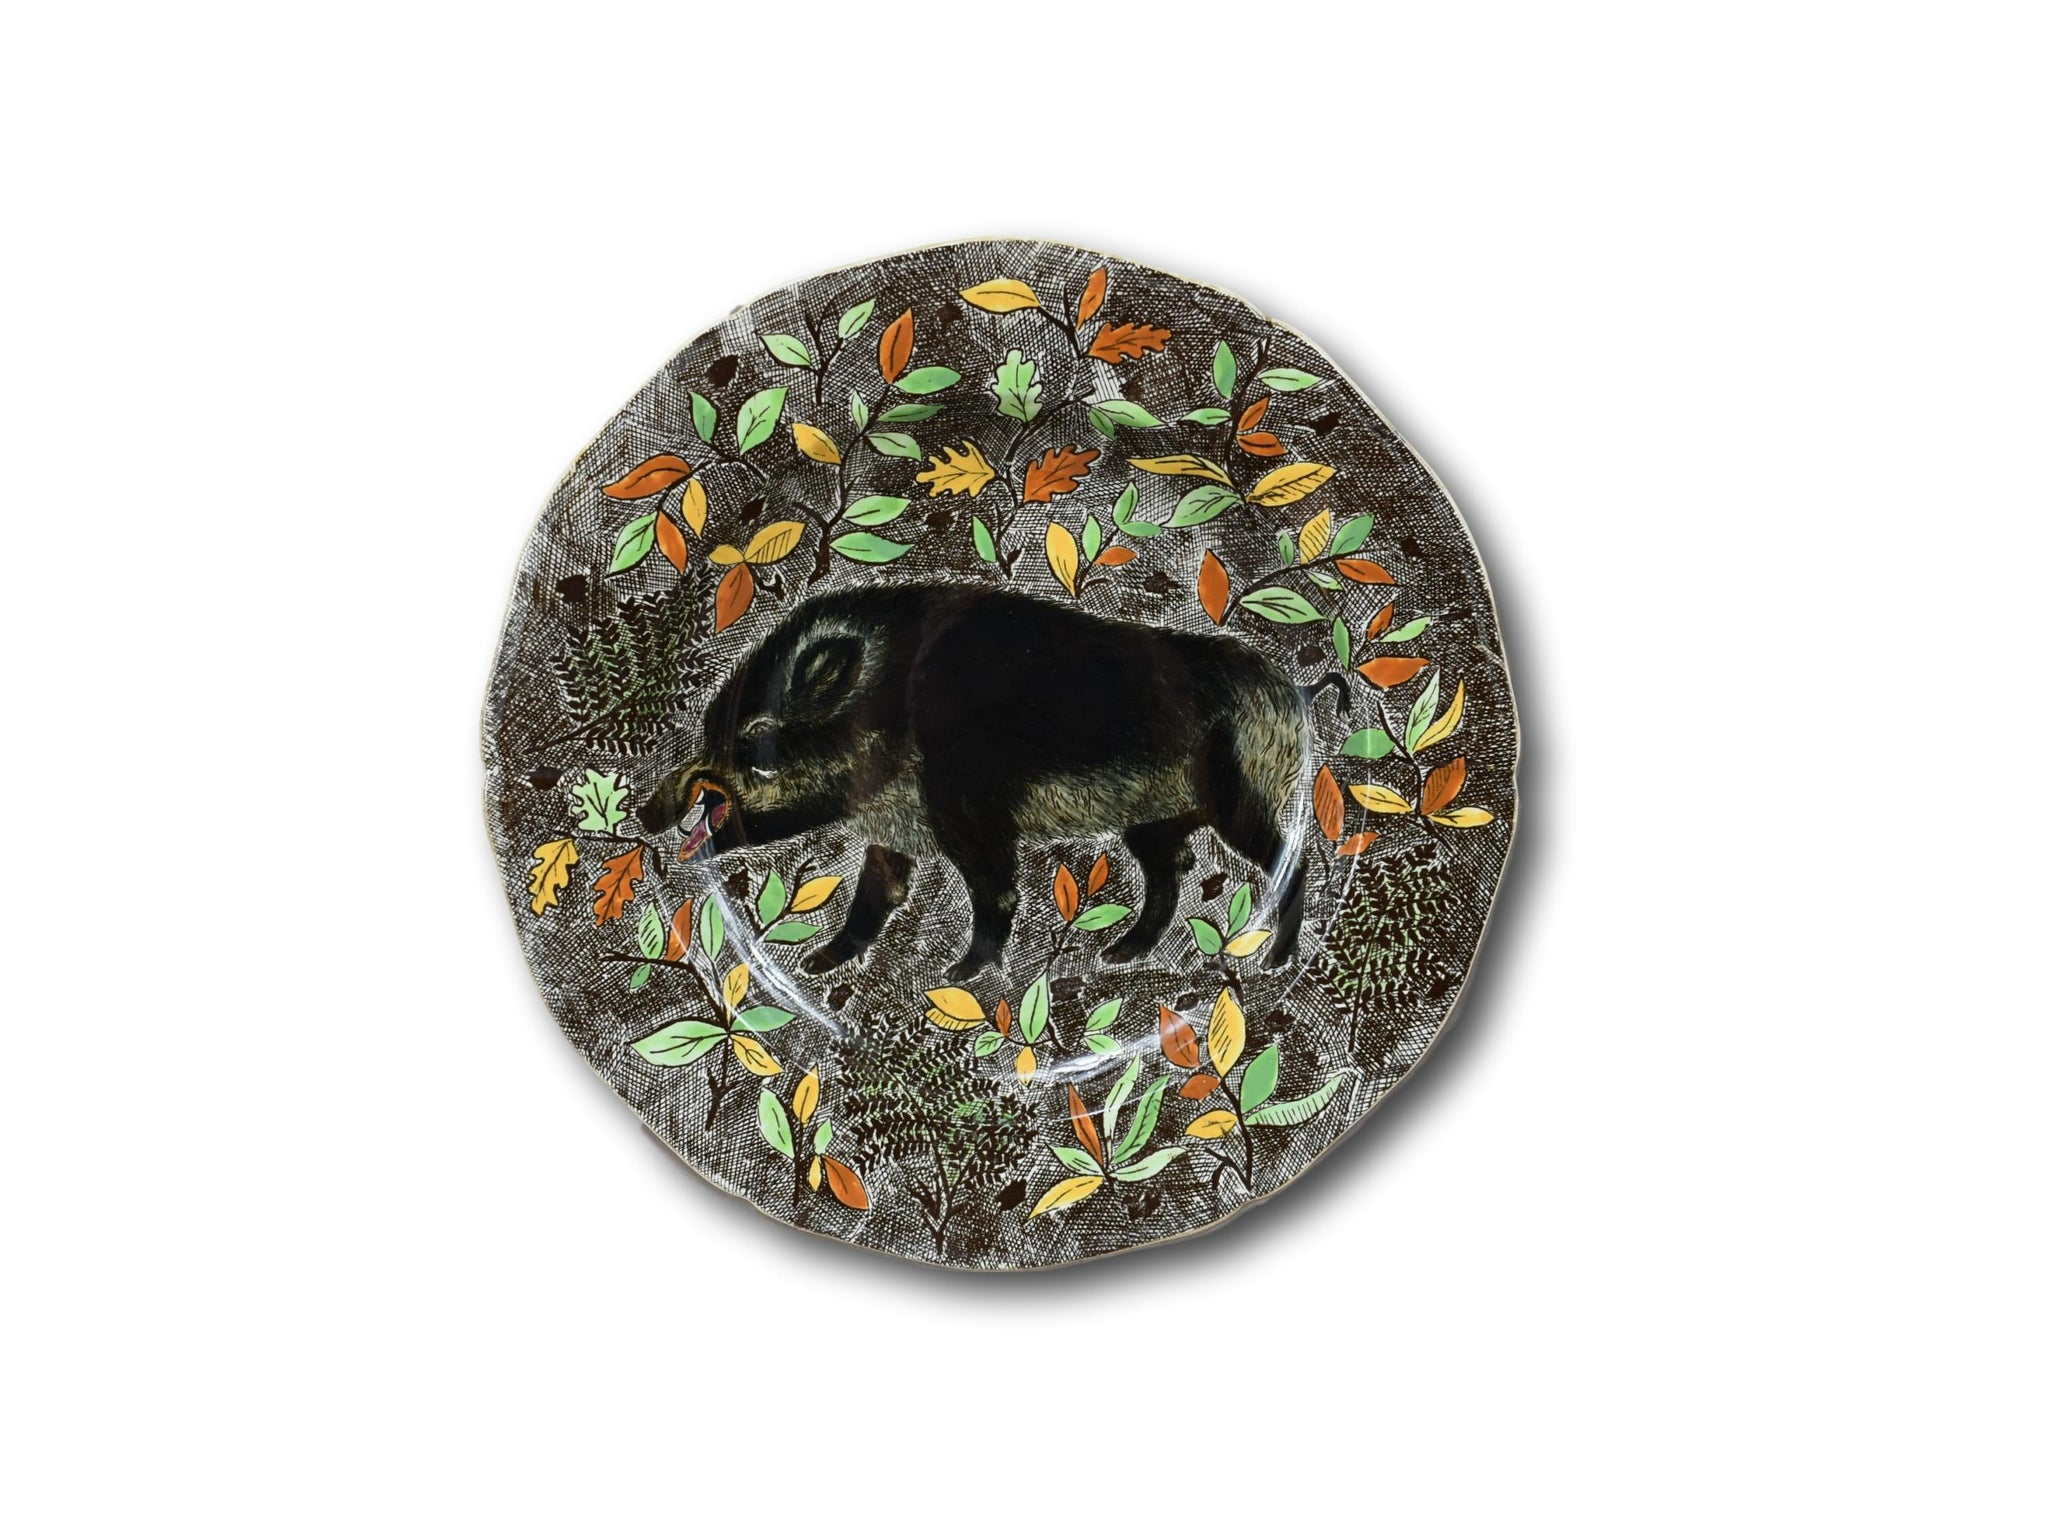 Vintage Rambouillet Gien Serving Plate, Hand Painted Wild Boar Wall Plate, Razzorback Hunting Majolica Dish